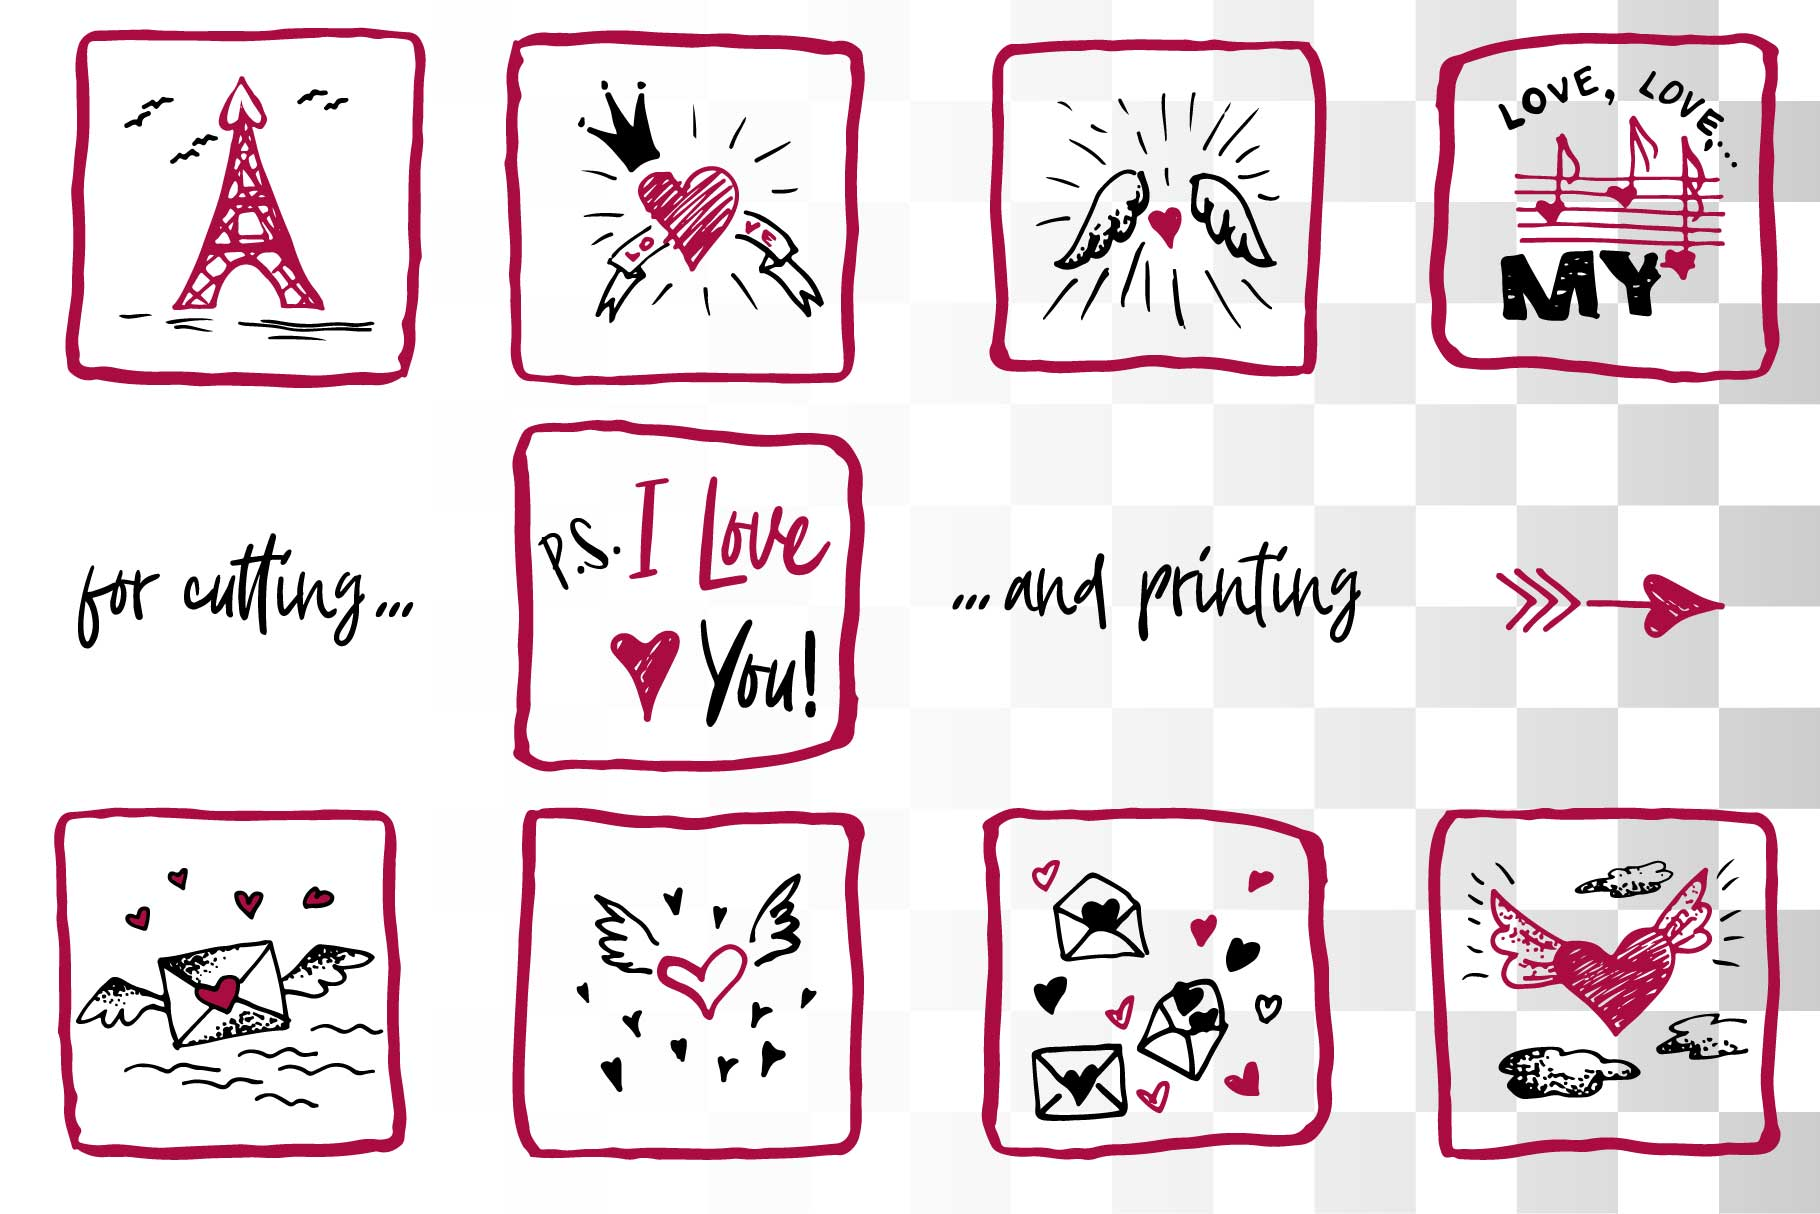 Lovely valentines day set - #5 SVG collection example image 2